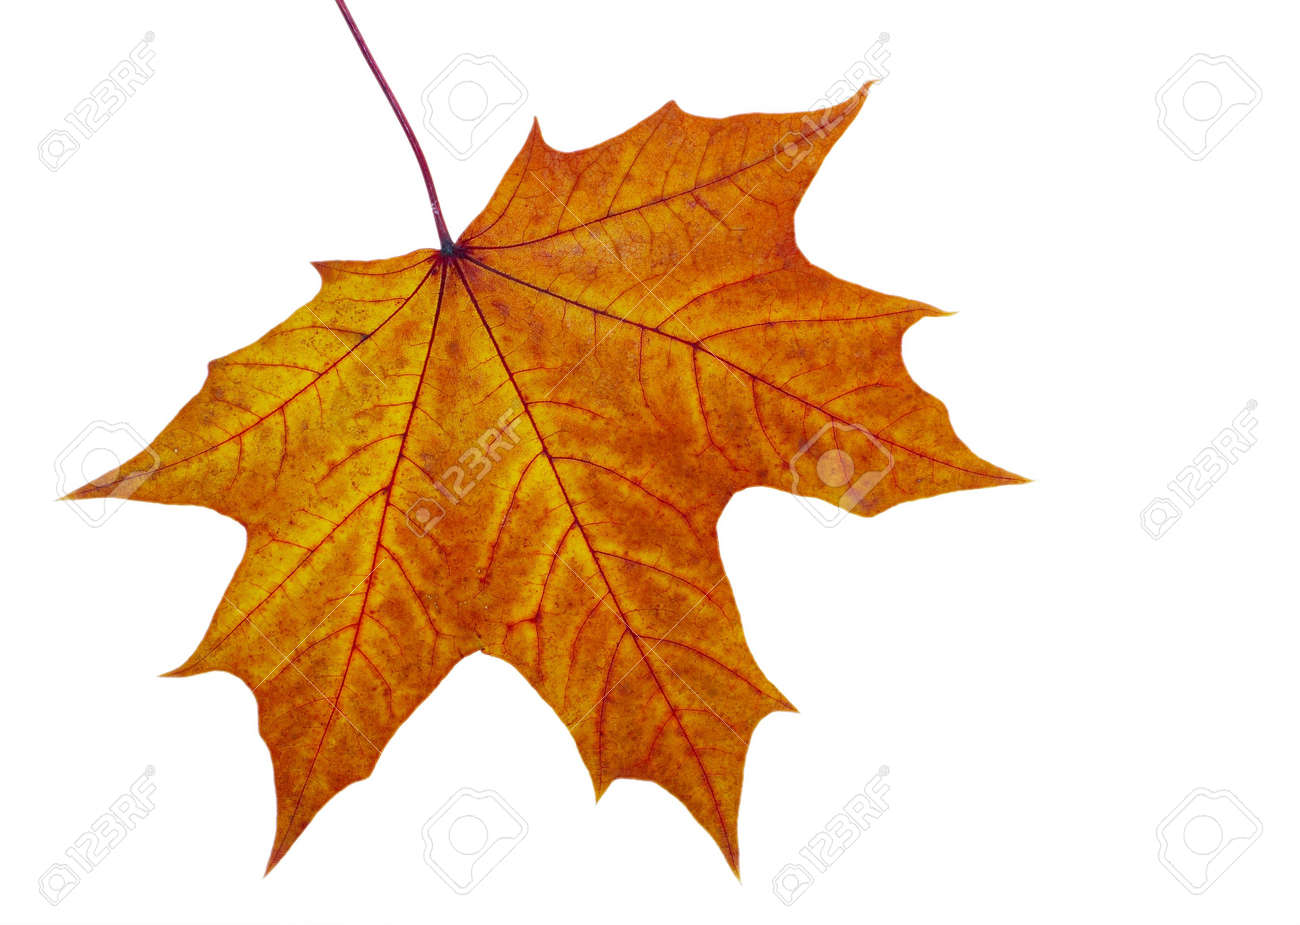 Autumn maple leave on a white background Stock Photo - 1769335